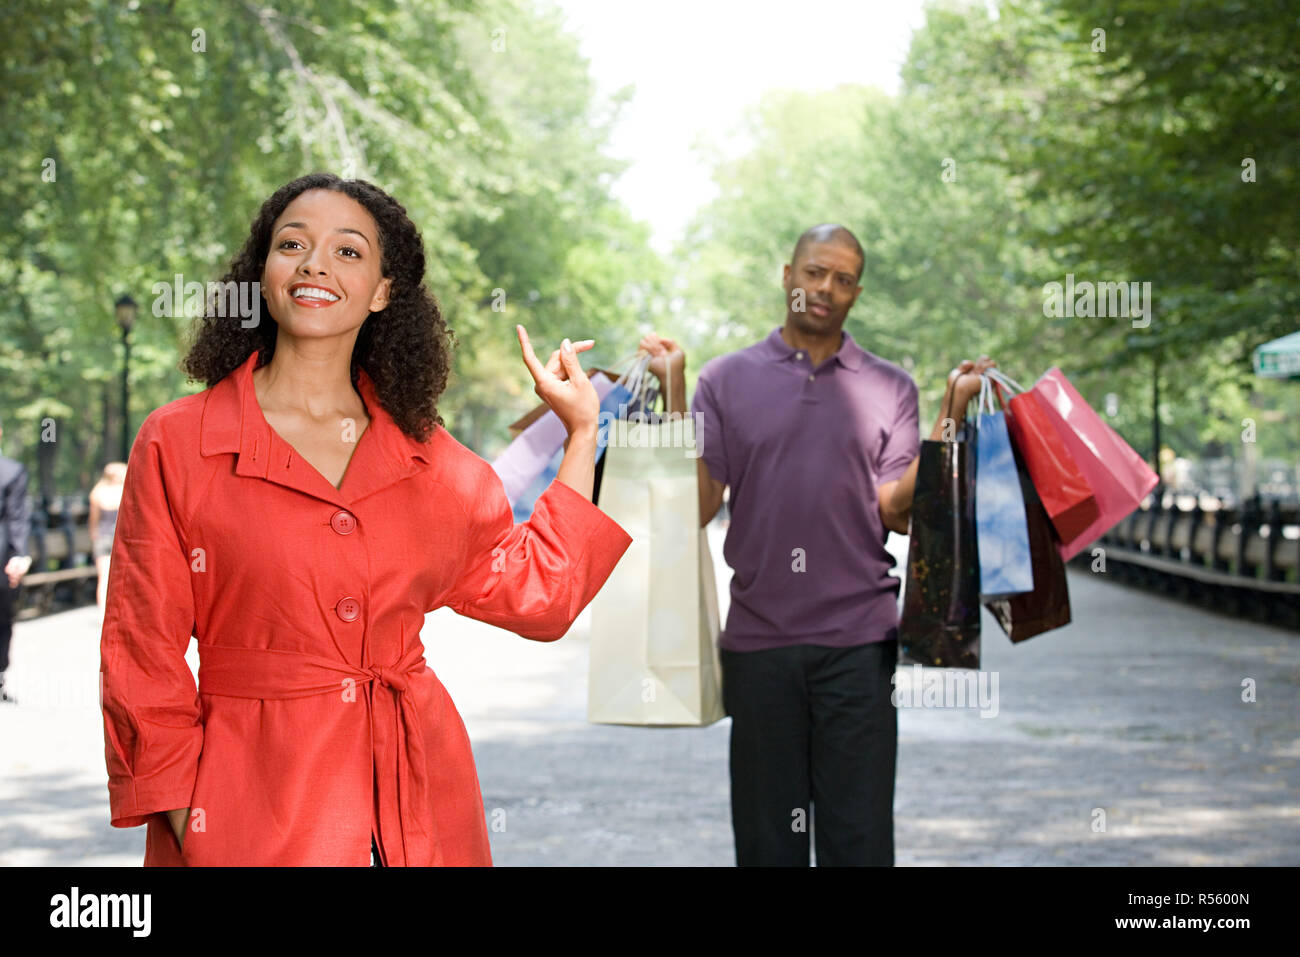 Man holding bags for woman - Stock Image